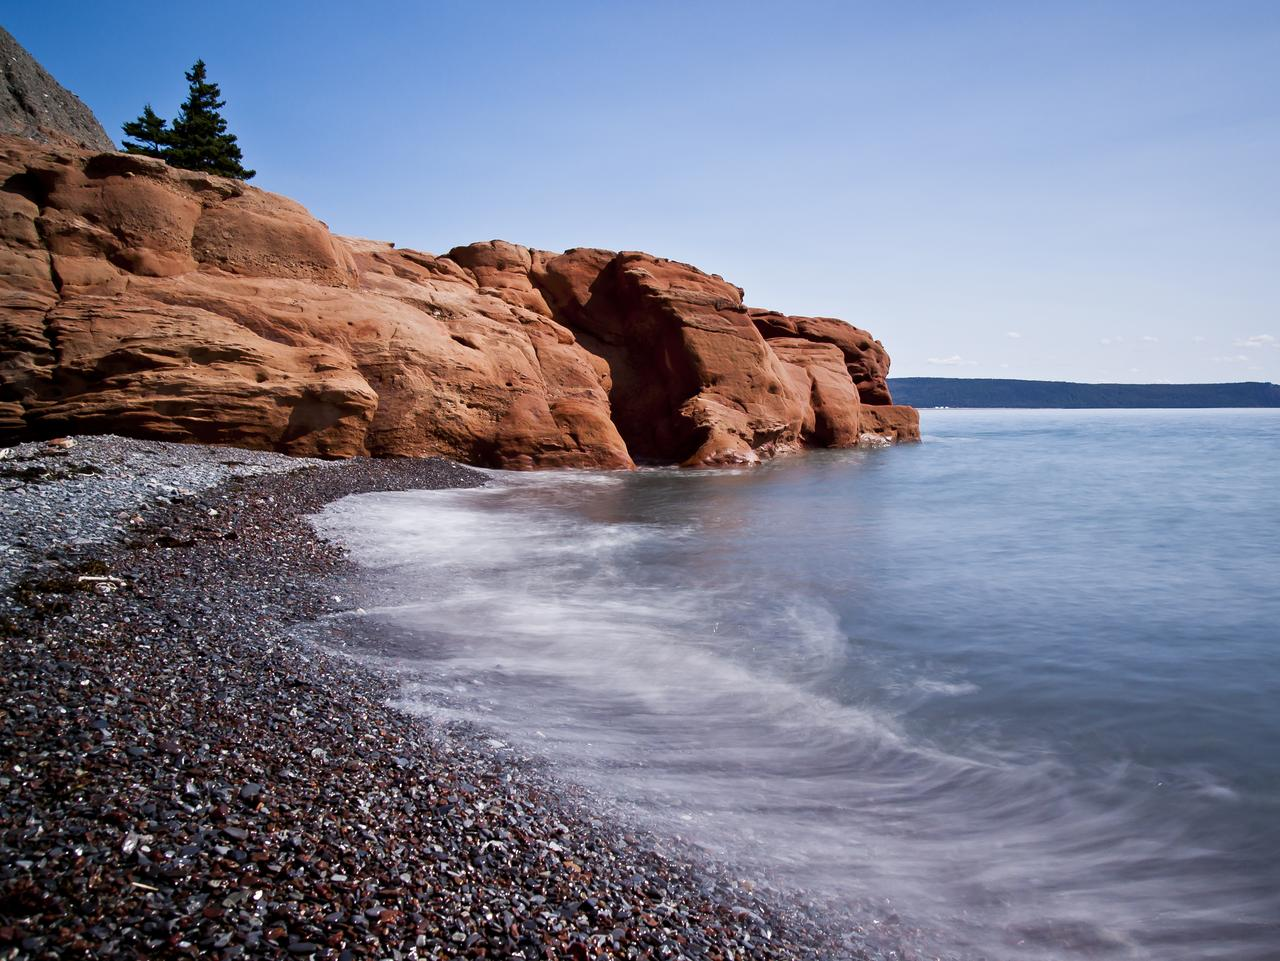 Cape Chignecto's red rock beach using 10 stop nd